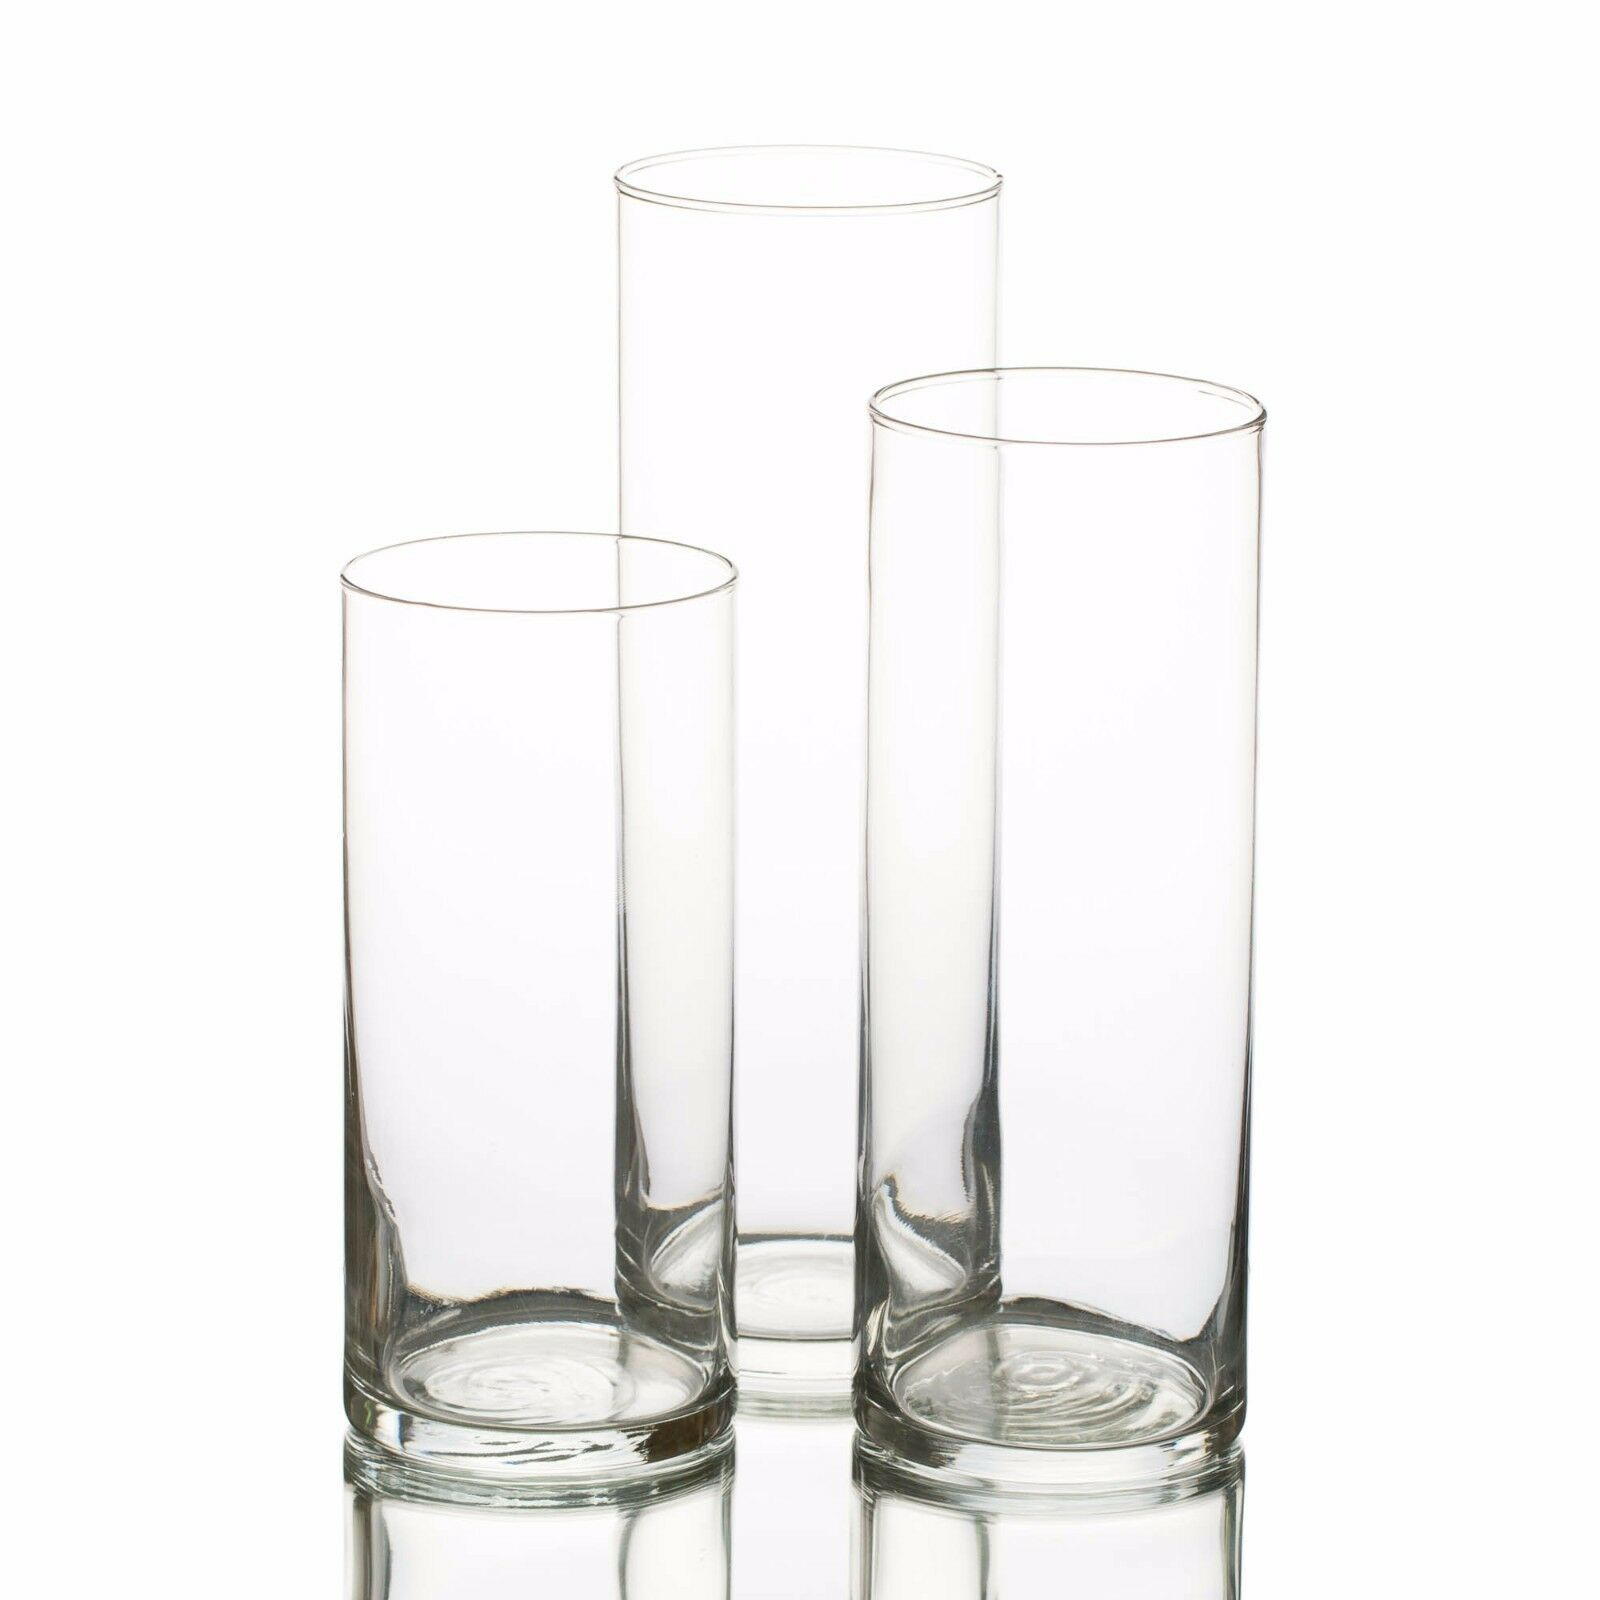 Eastland Glass Cylinder Vases Set of 3 Home Wedding & Event Decor